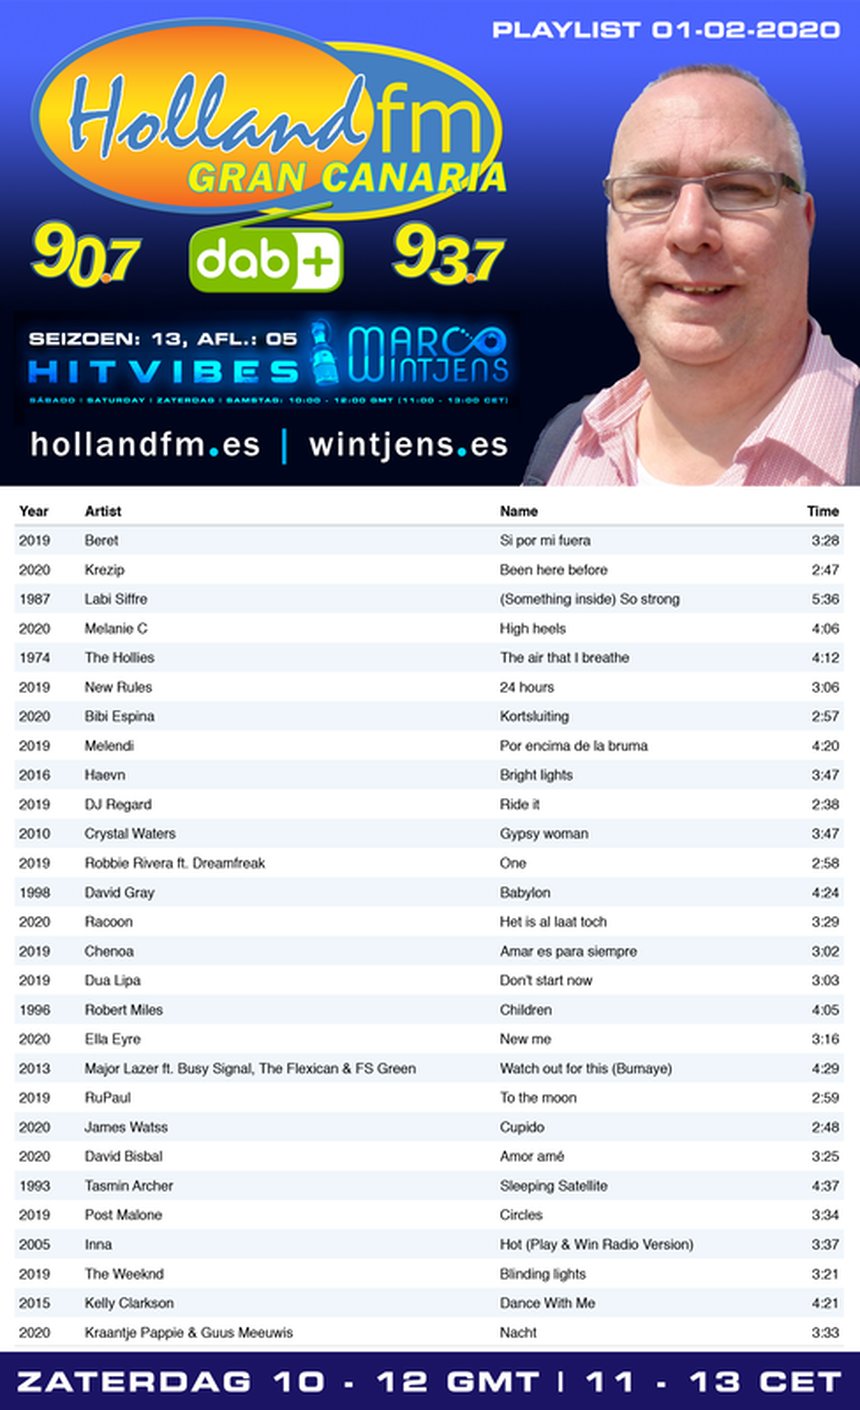 Playlist HitVibes, Marco Wintjens, Holland FM, 01-02-2020